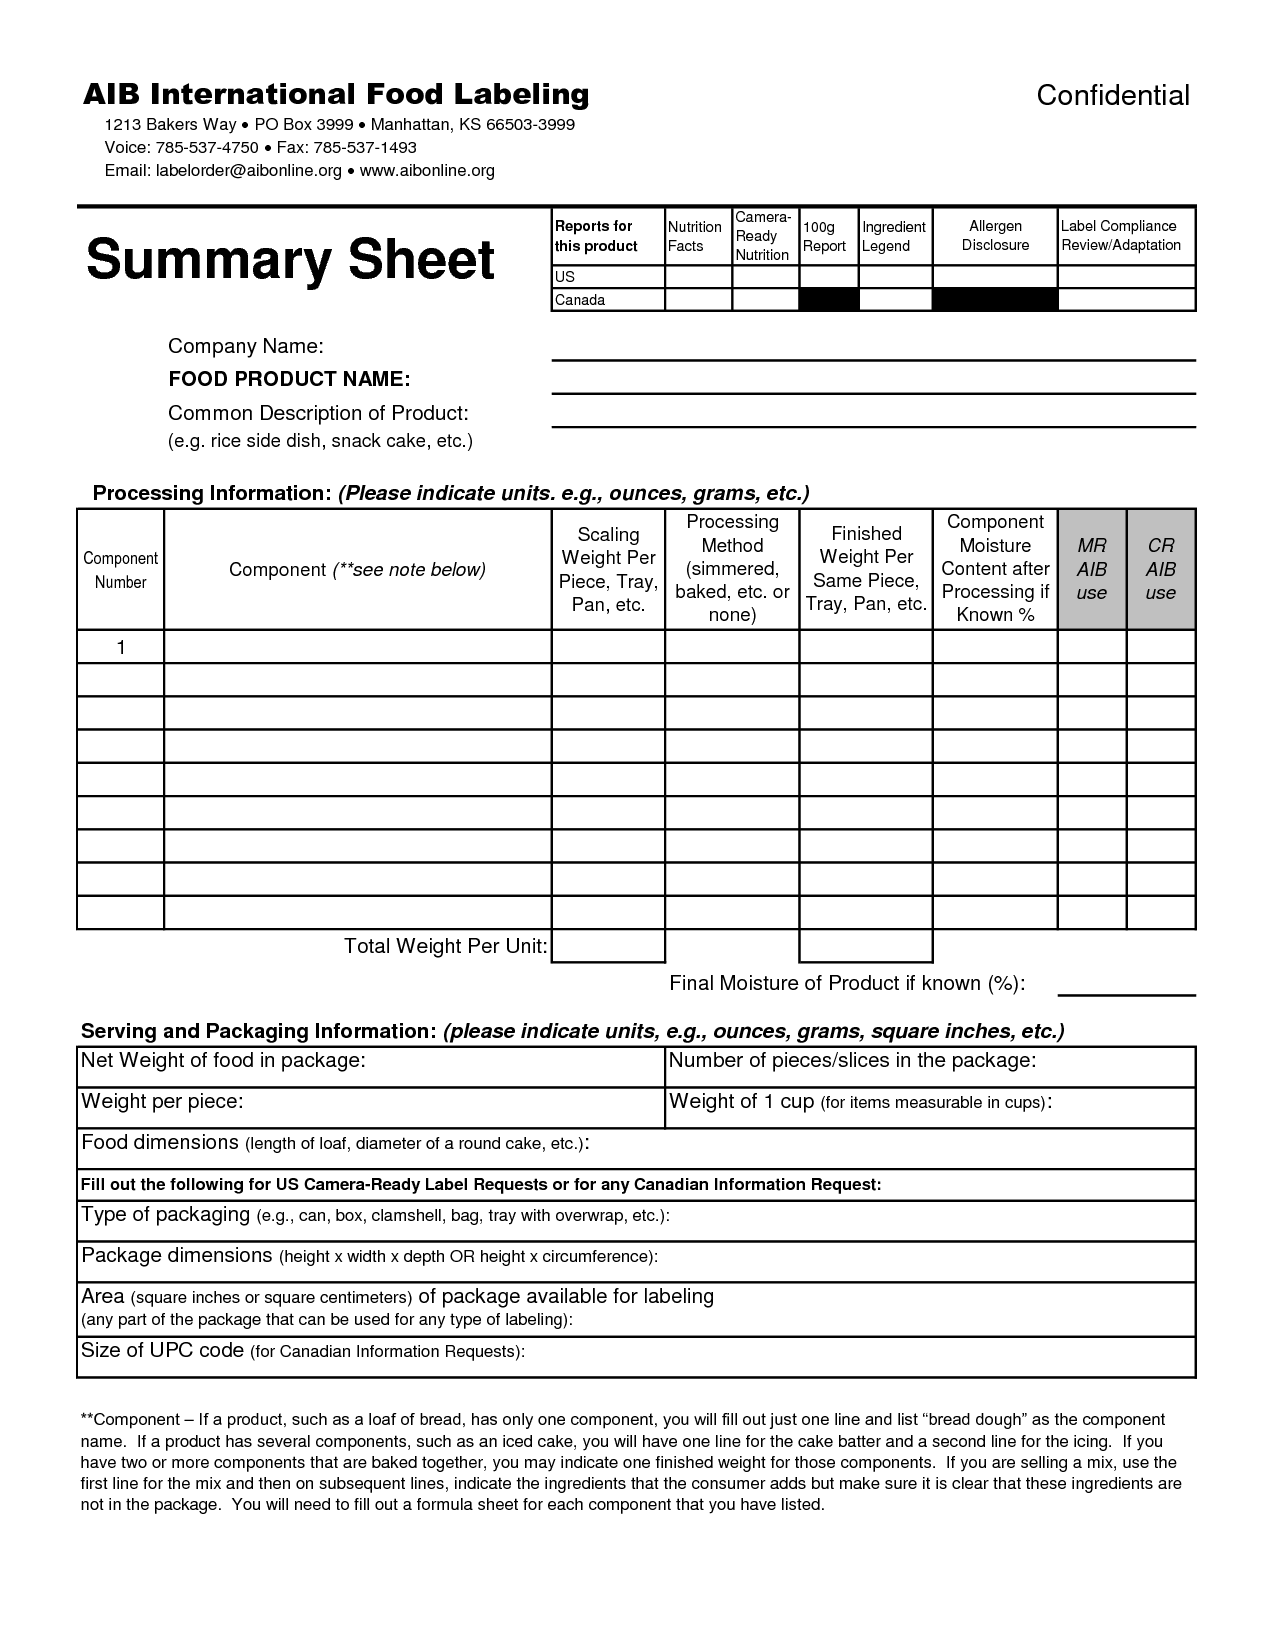 Nutrition Sheet Worksheet